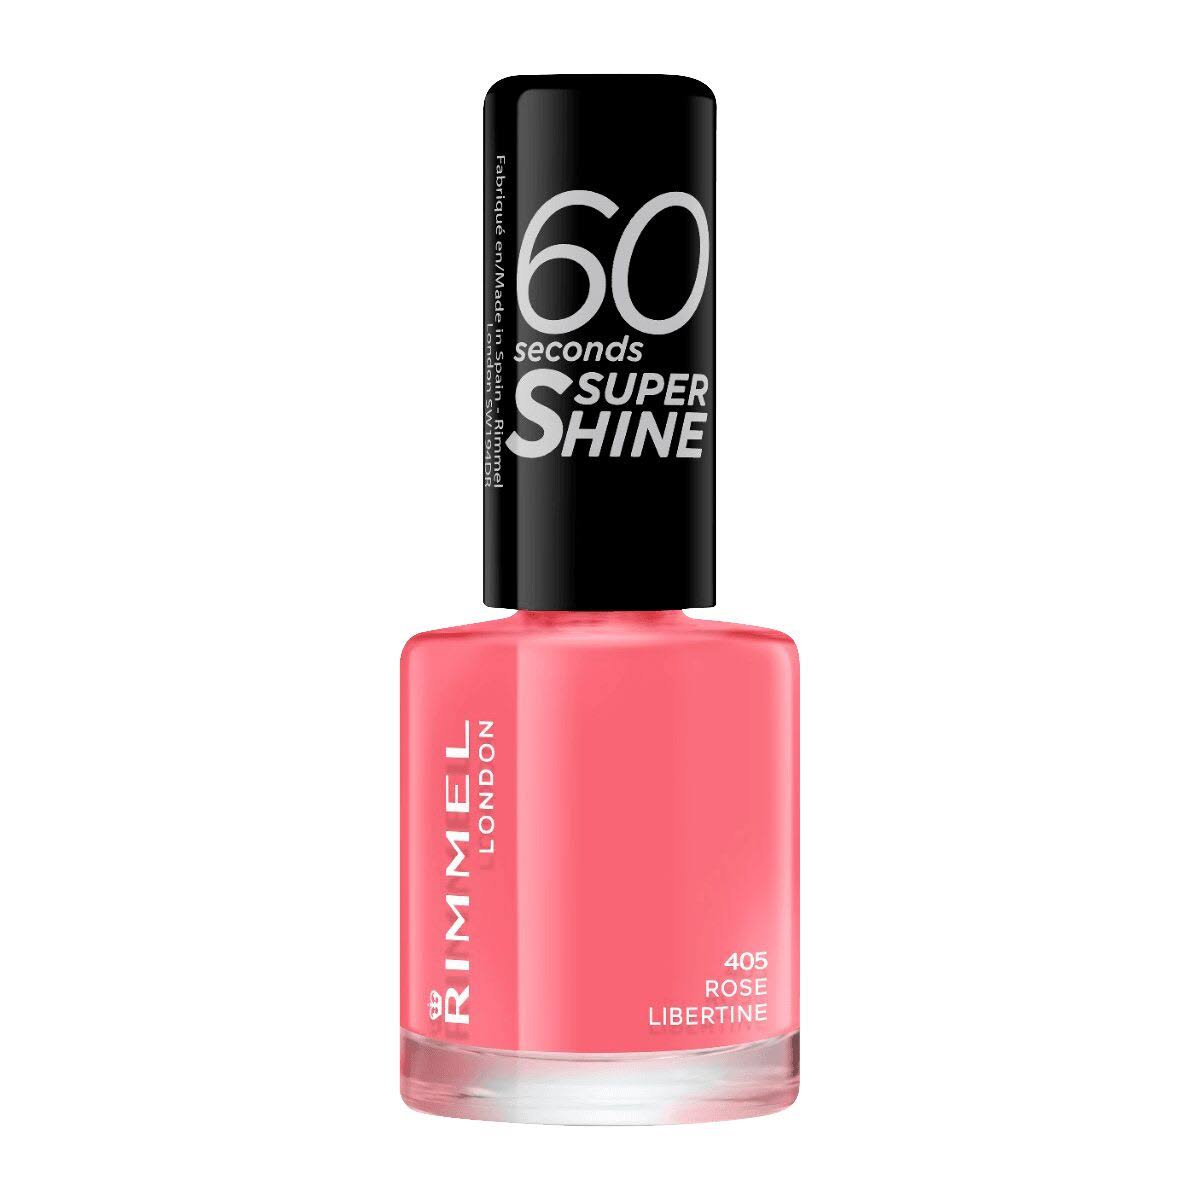 Rimmel London 60 Seconds Super Shine Nail Polish - 405 Rose Libertine, 8ml